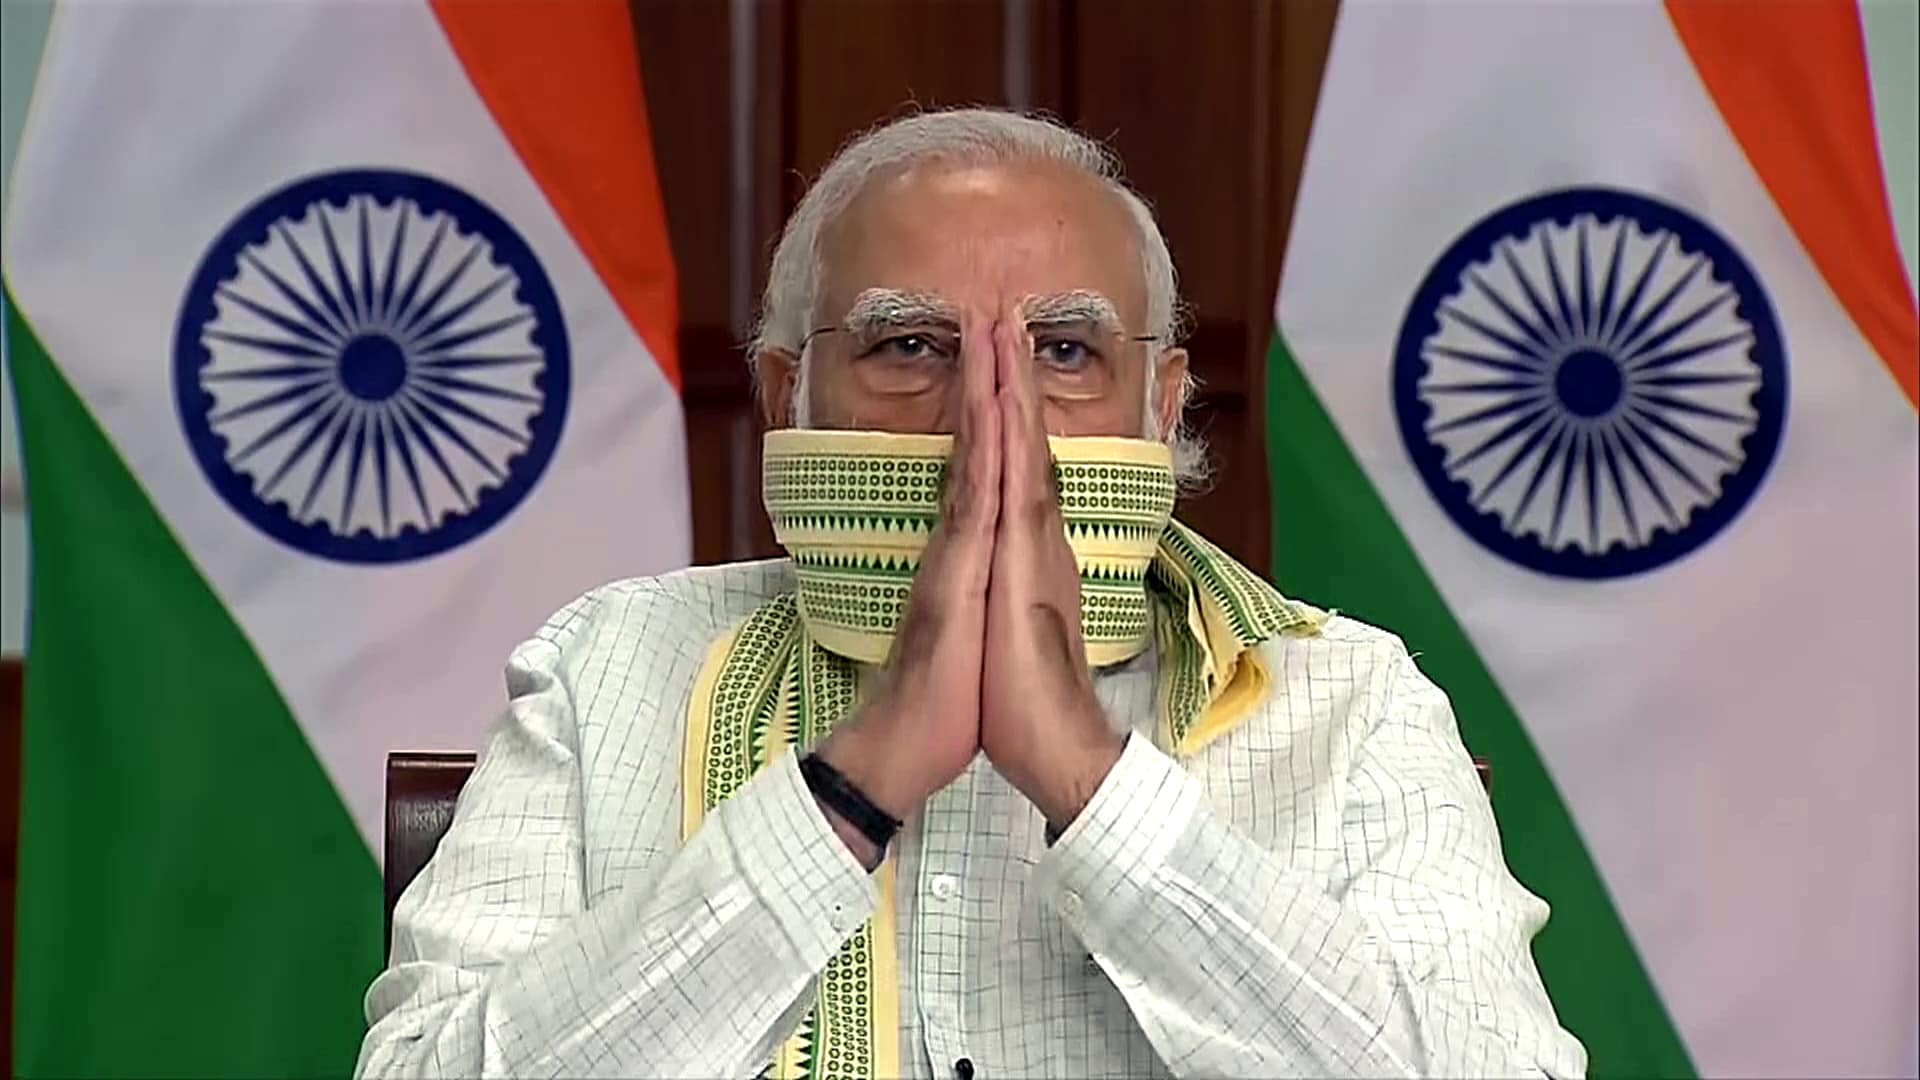 Khadi sales pick up on PM Modi's appeal, 1.9 million masks sold in 5 months